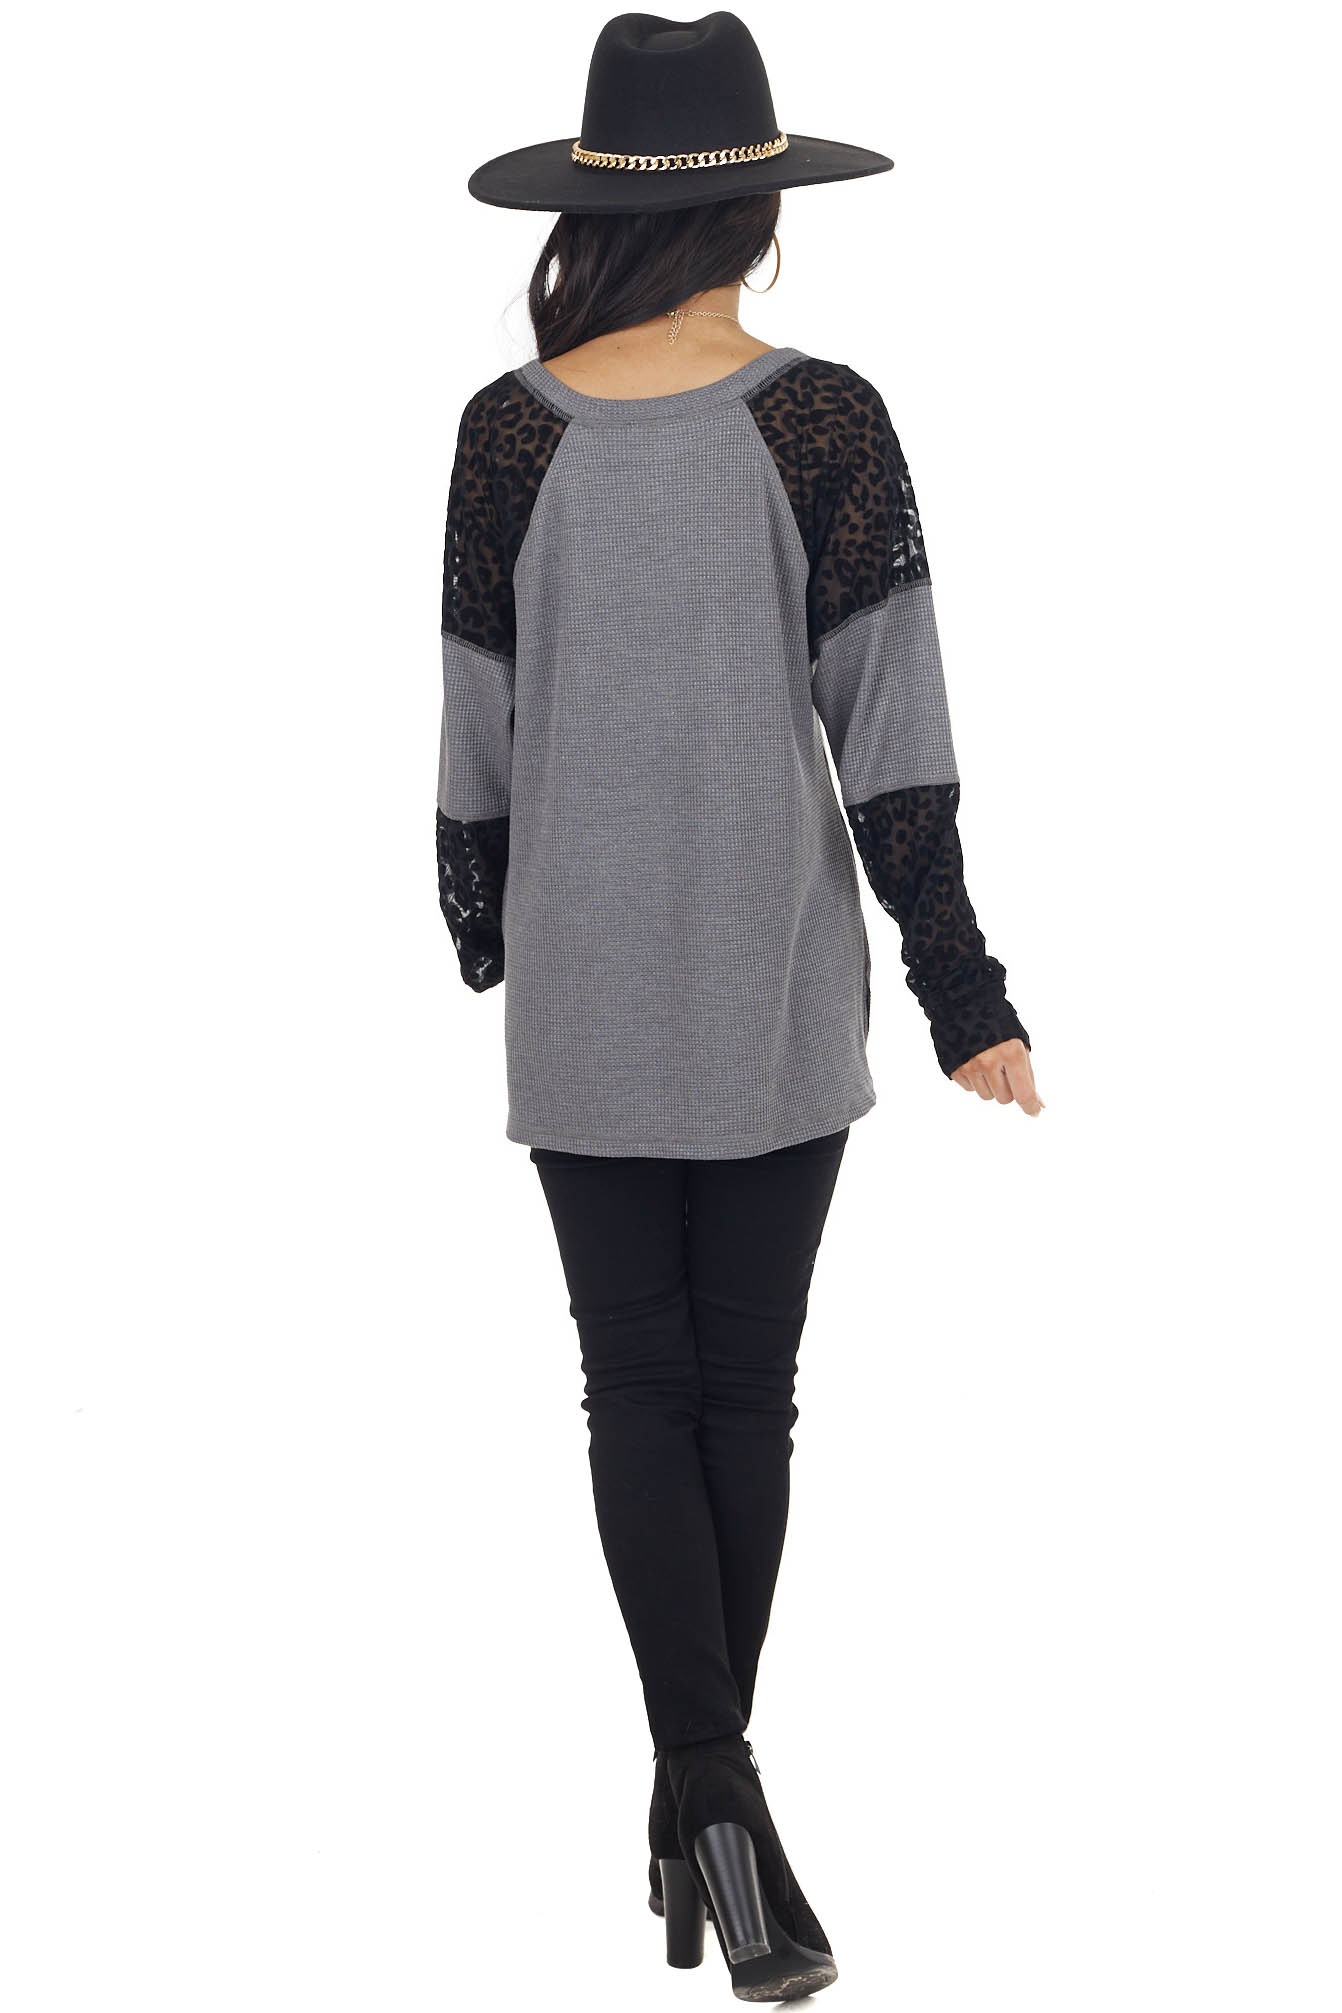 Stone Grey Knit Top with Mesh Textured Leopard Print Sleeves